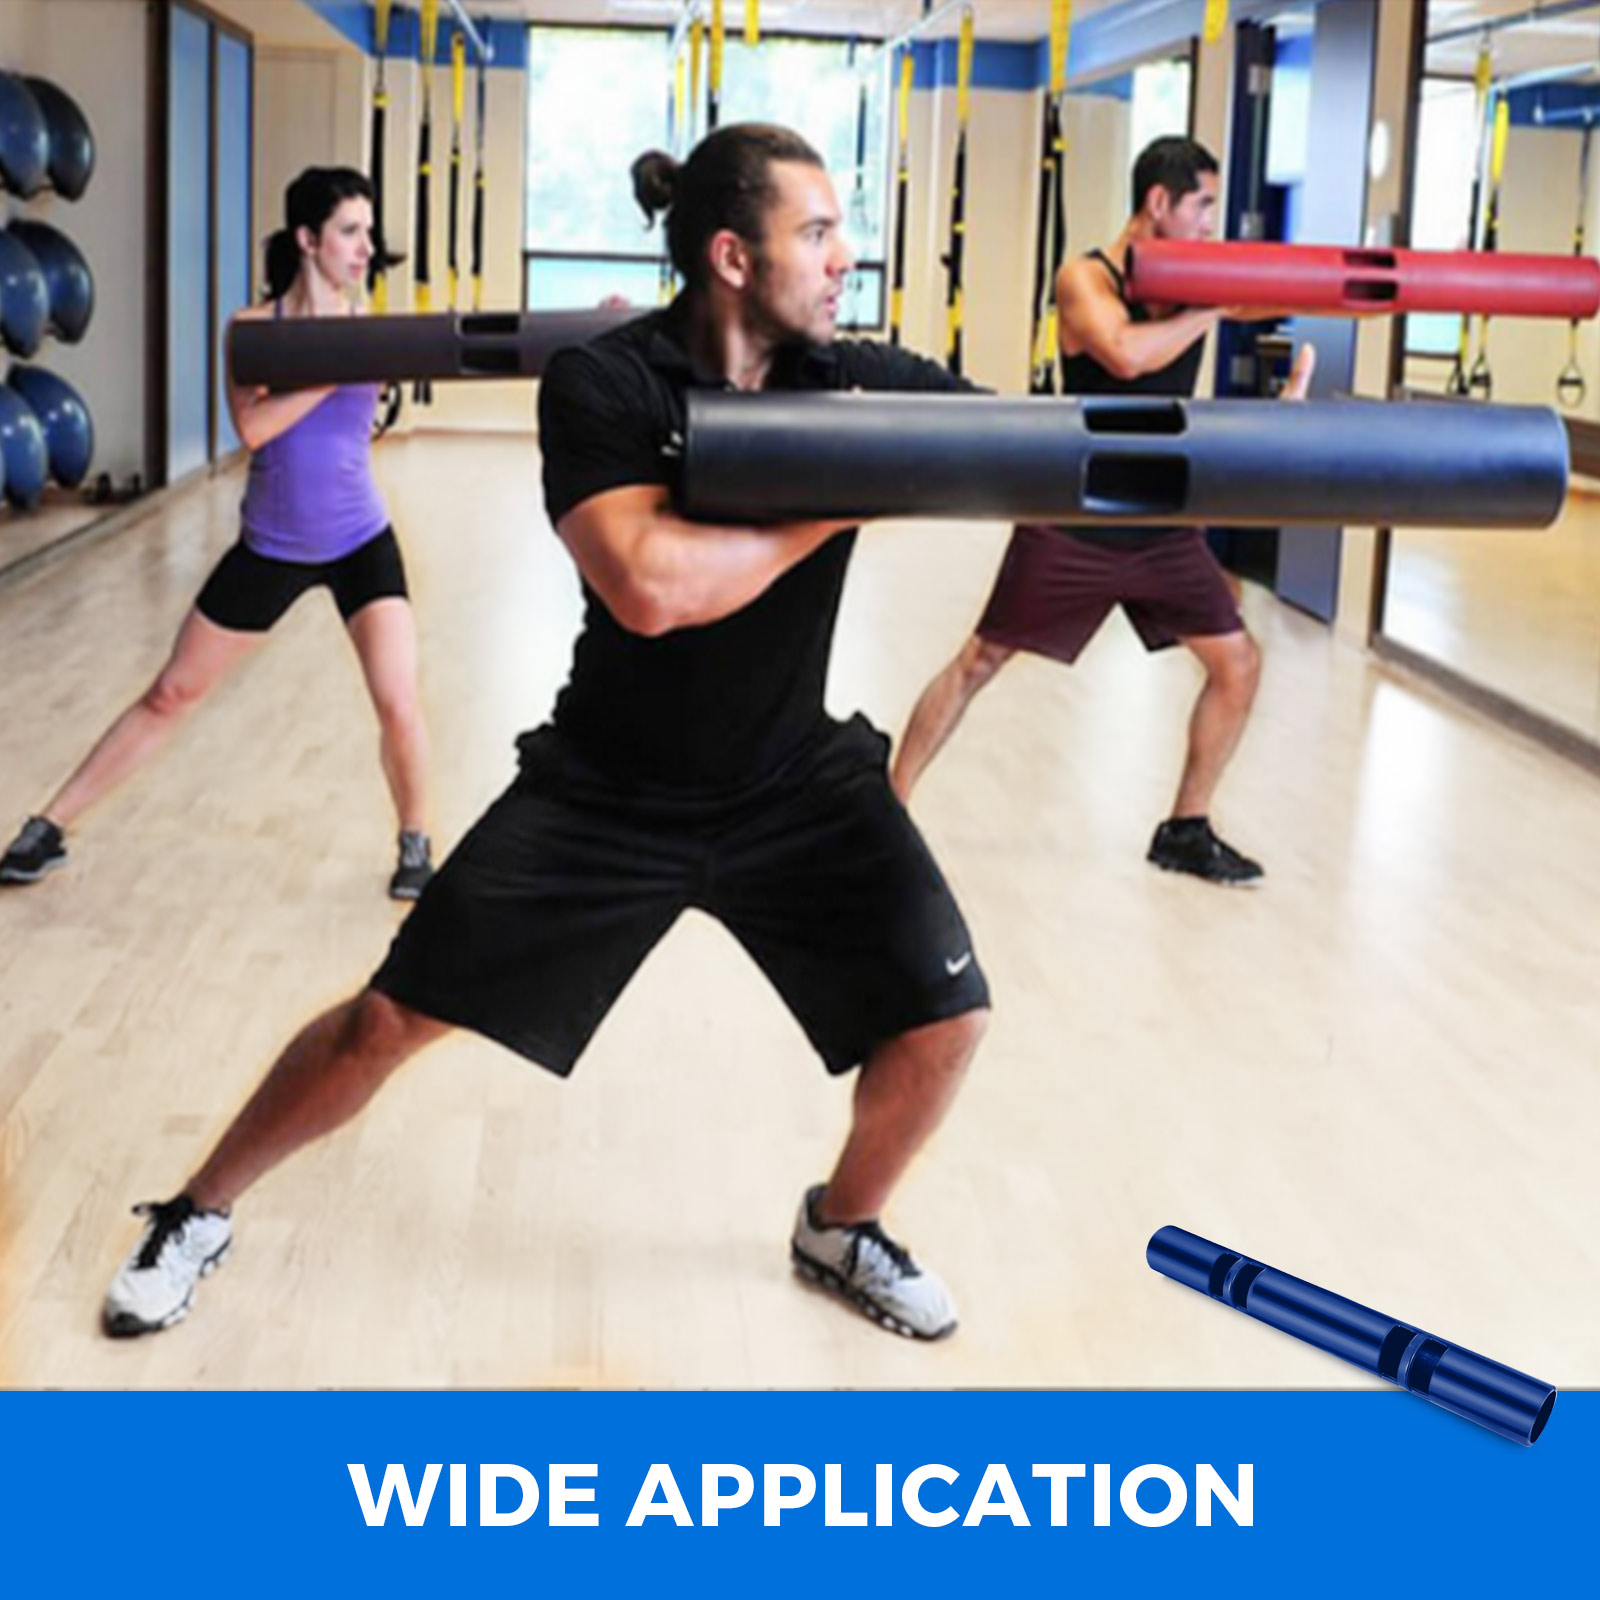 Vipr-Fitpro-Fitness-Tube-Loaded-Movement-Training-weightlifting-4-6-8-10-12-Kg thumbnail 247